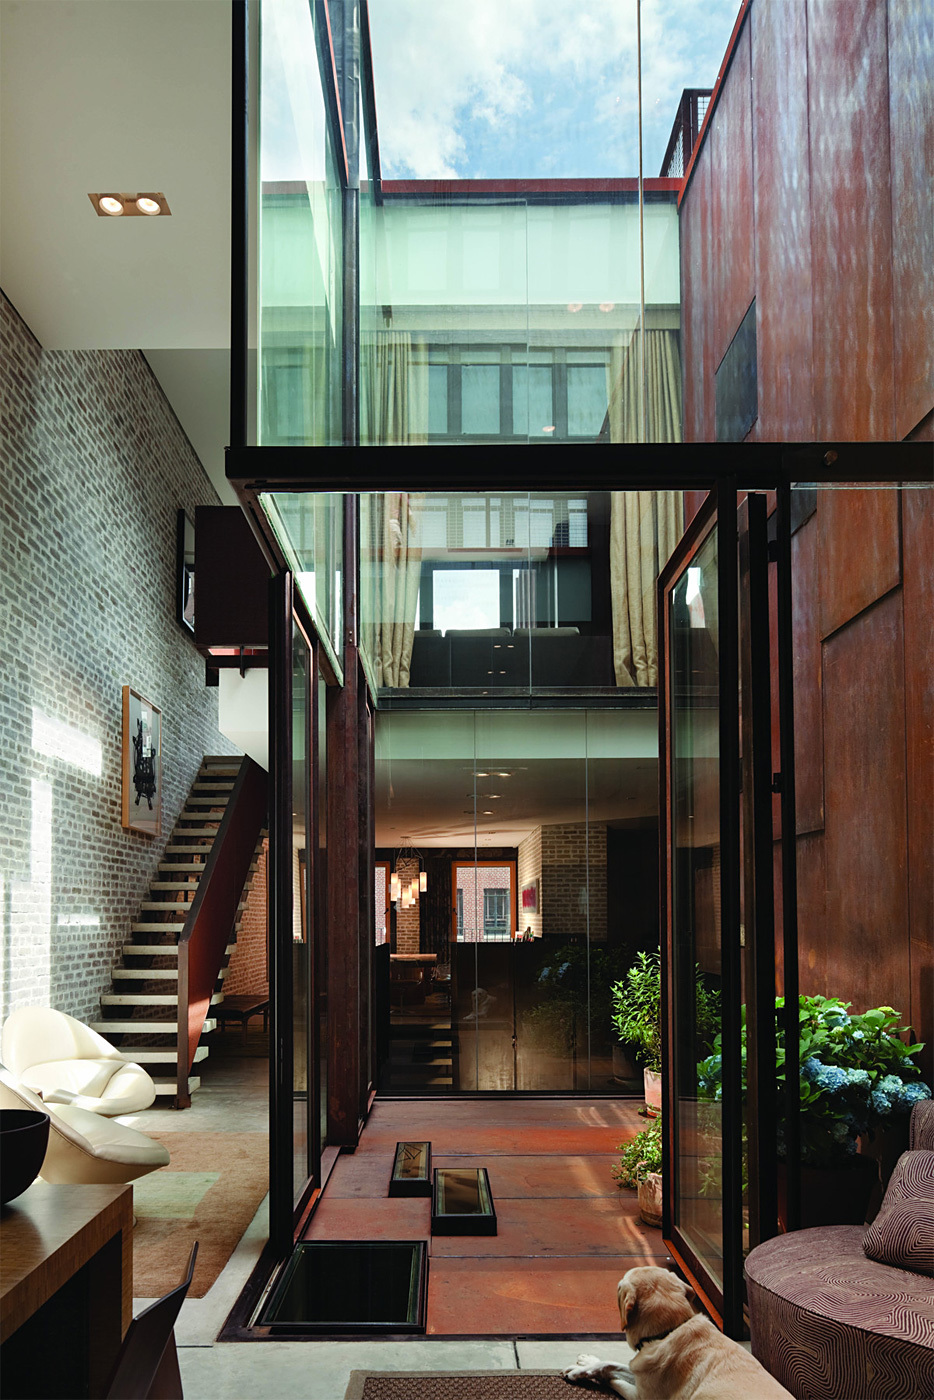 Inverted Warehouse / Townhouse in New York, NY by Dean/Wolf Architects